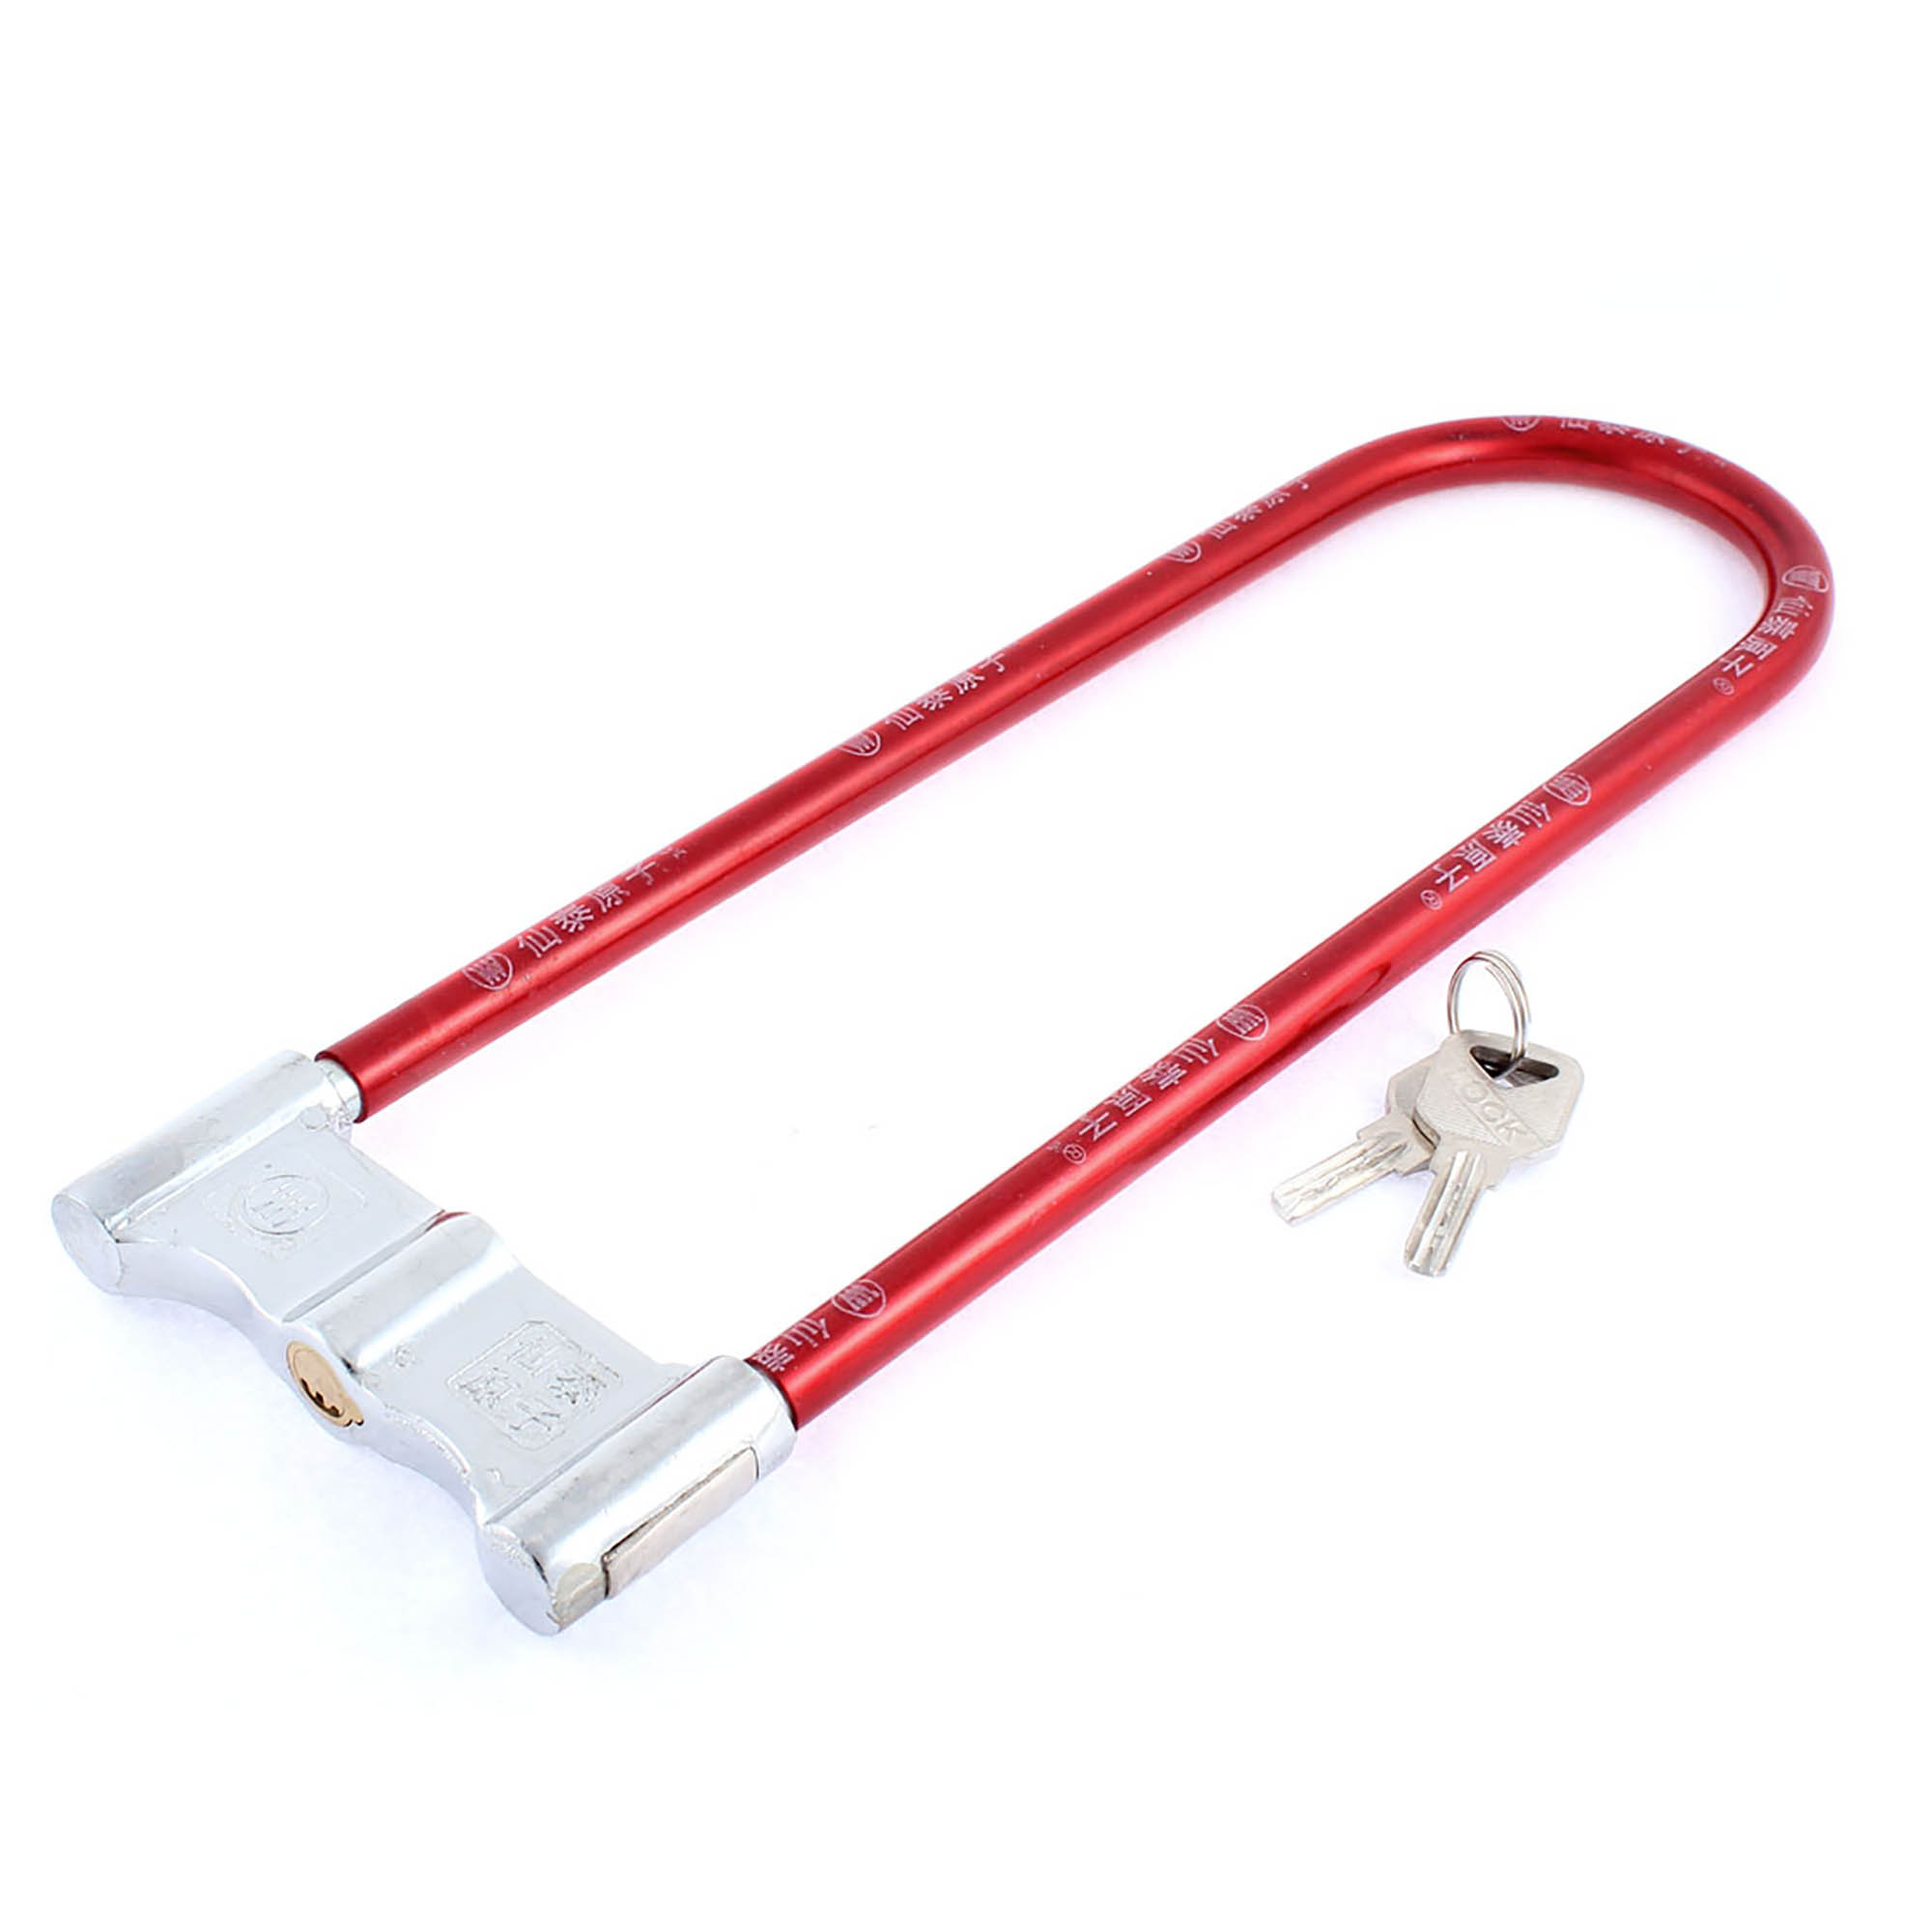 "Motorbike Bicycle Bike 13.4"" U Shape Red Lock w 2 Keys"